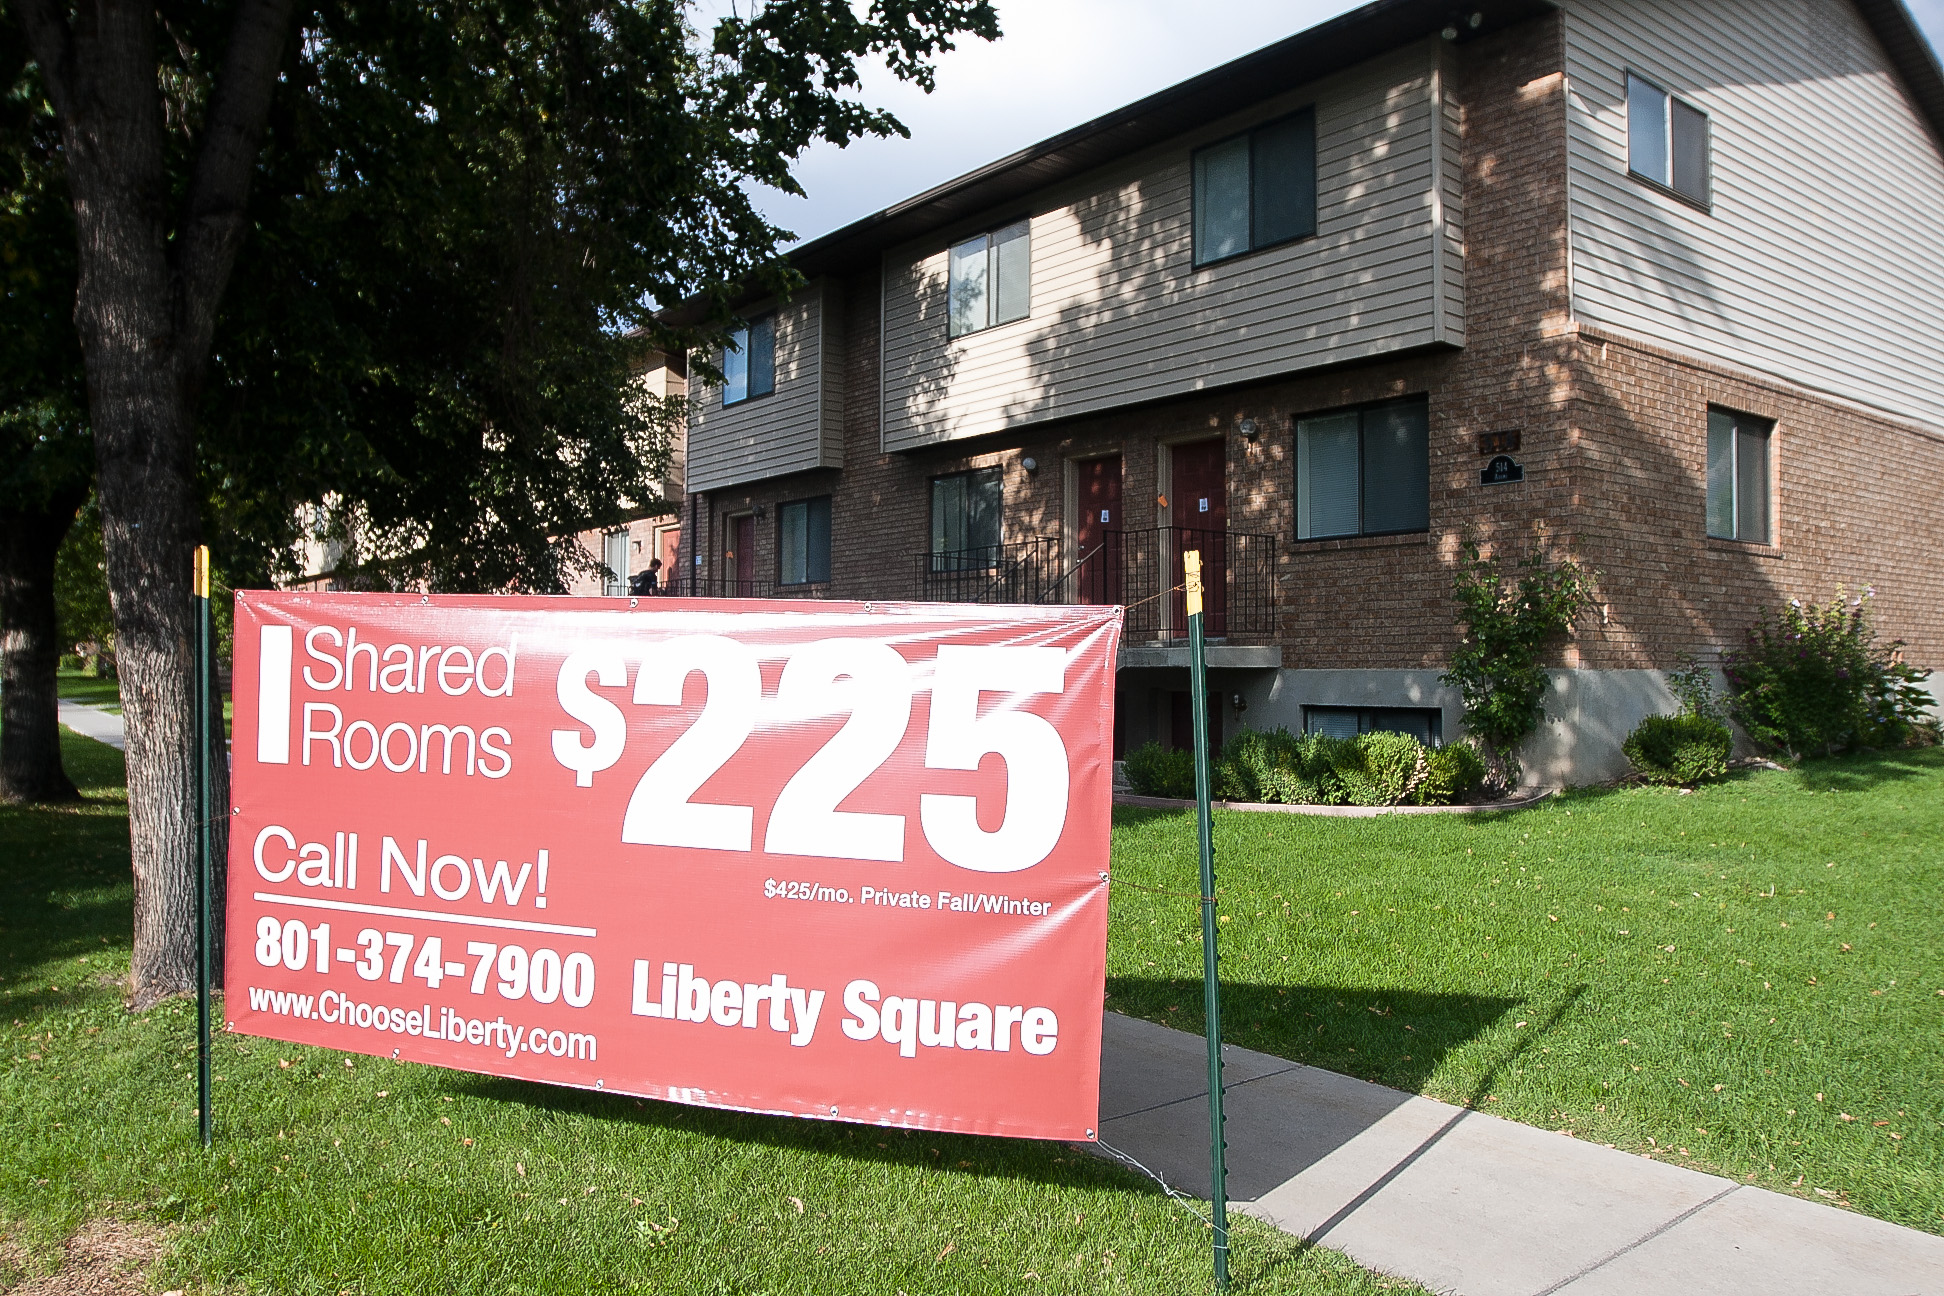 Rents around Provo are falling due to a fall in demand and rise in supply.